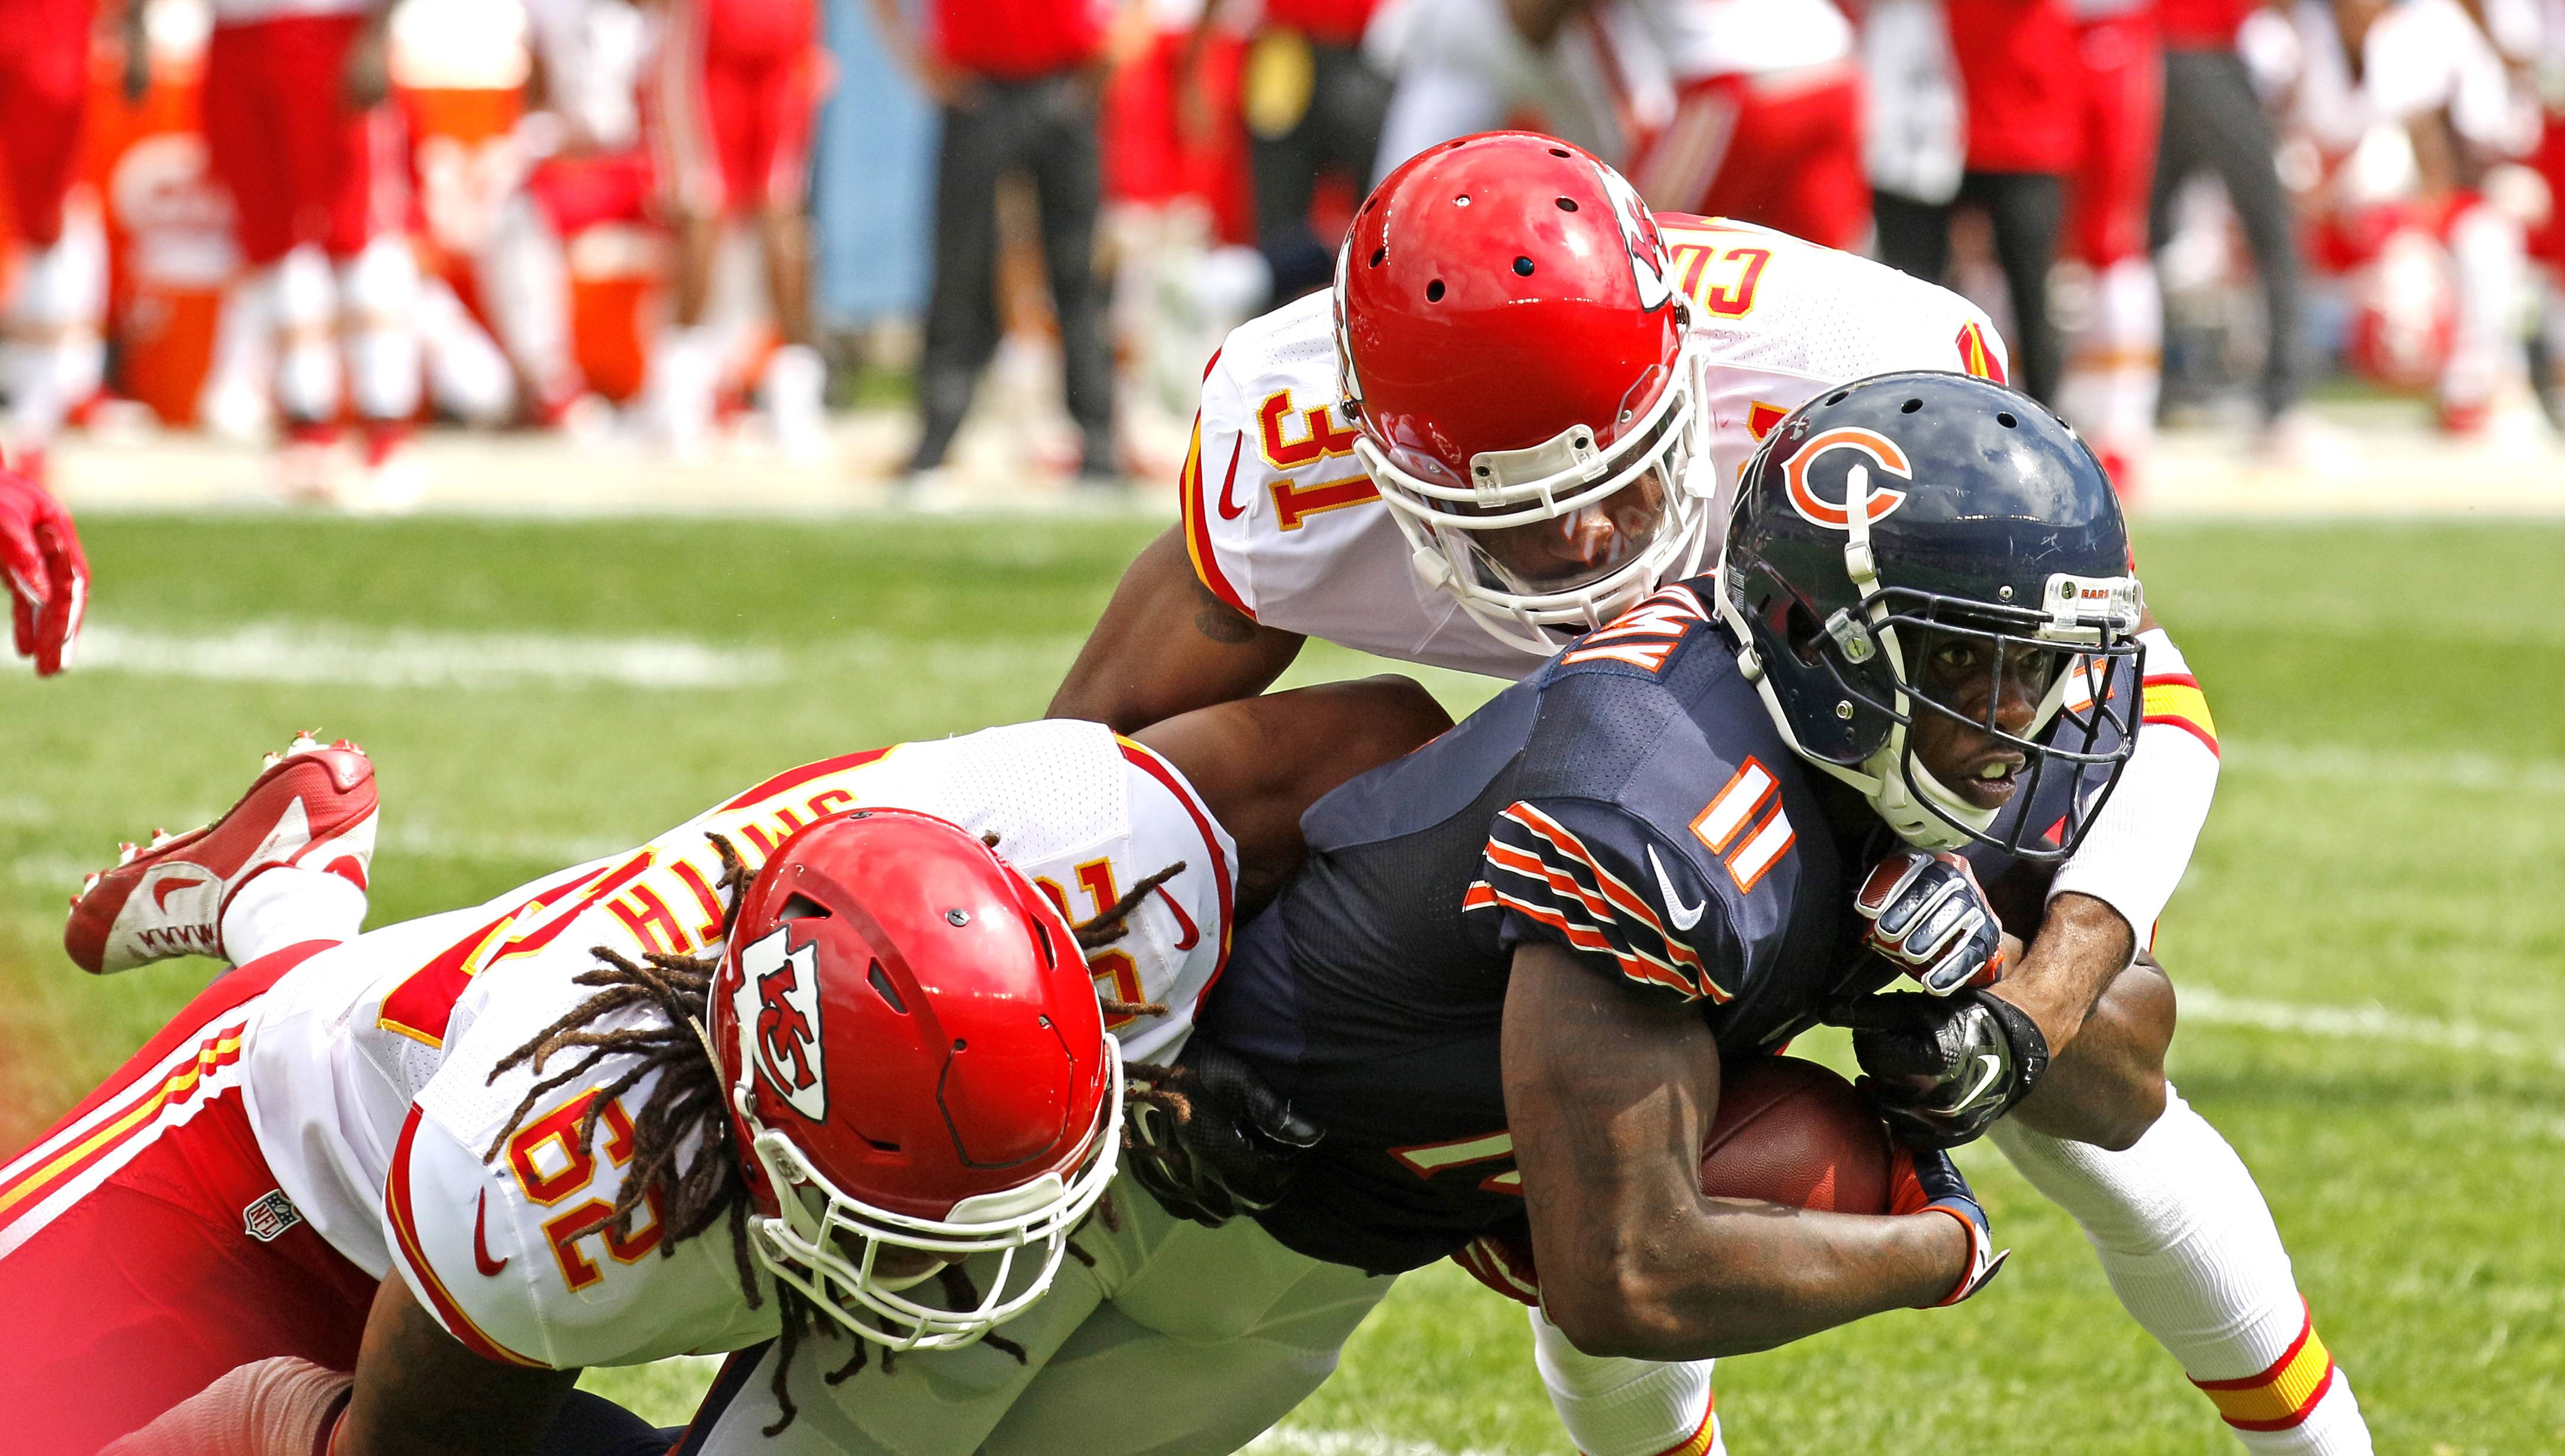 Daniel White/dwhite@dailyherald.com Bears wide receiver Joshua Bellamy is tackled by the Kansas City Chiefs' Terrance Smith and Marcus Cooper during a preseason game Saturday at Soldier Field. The Bears lost 23-7.